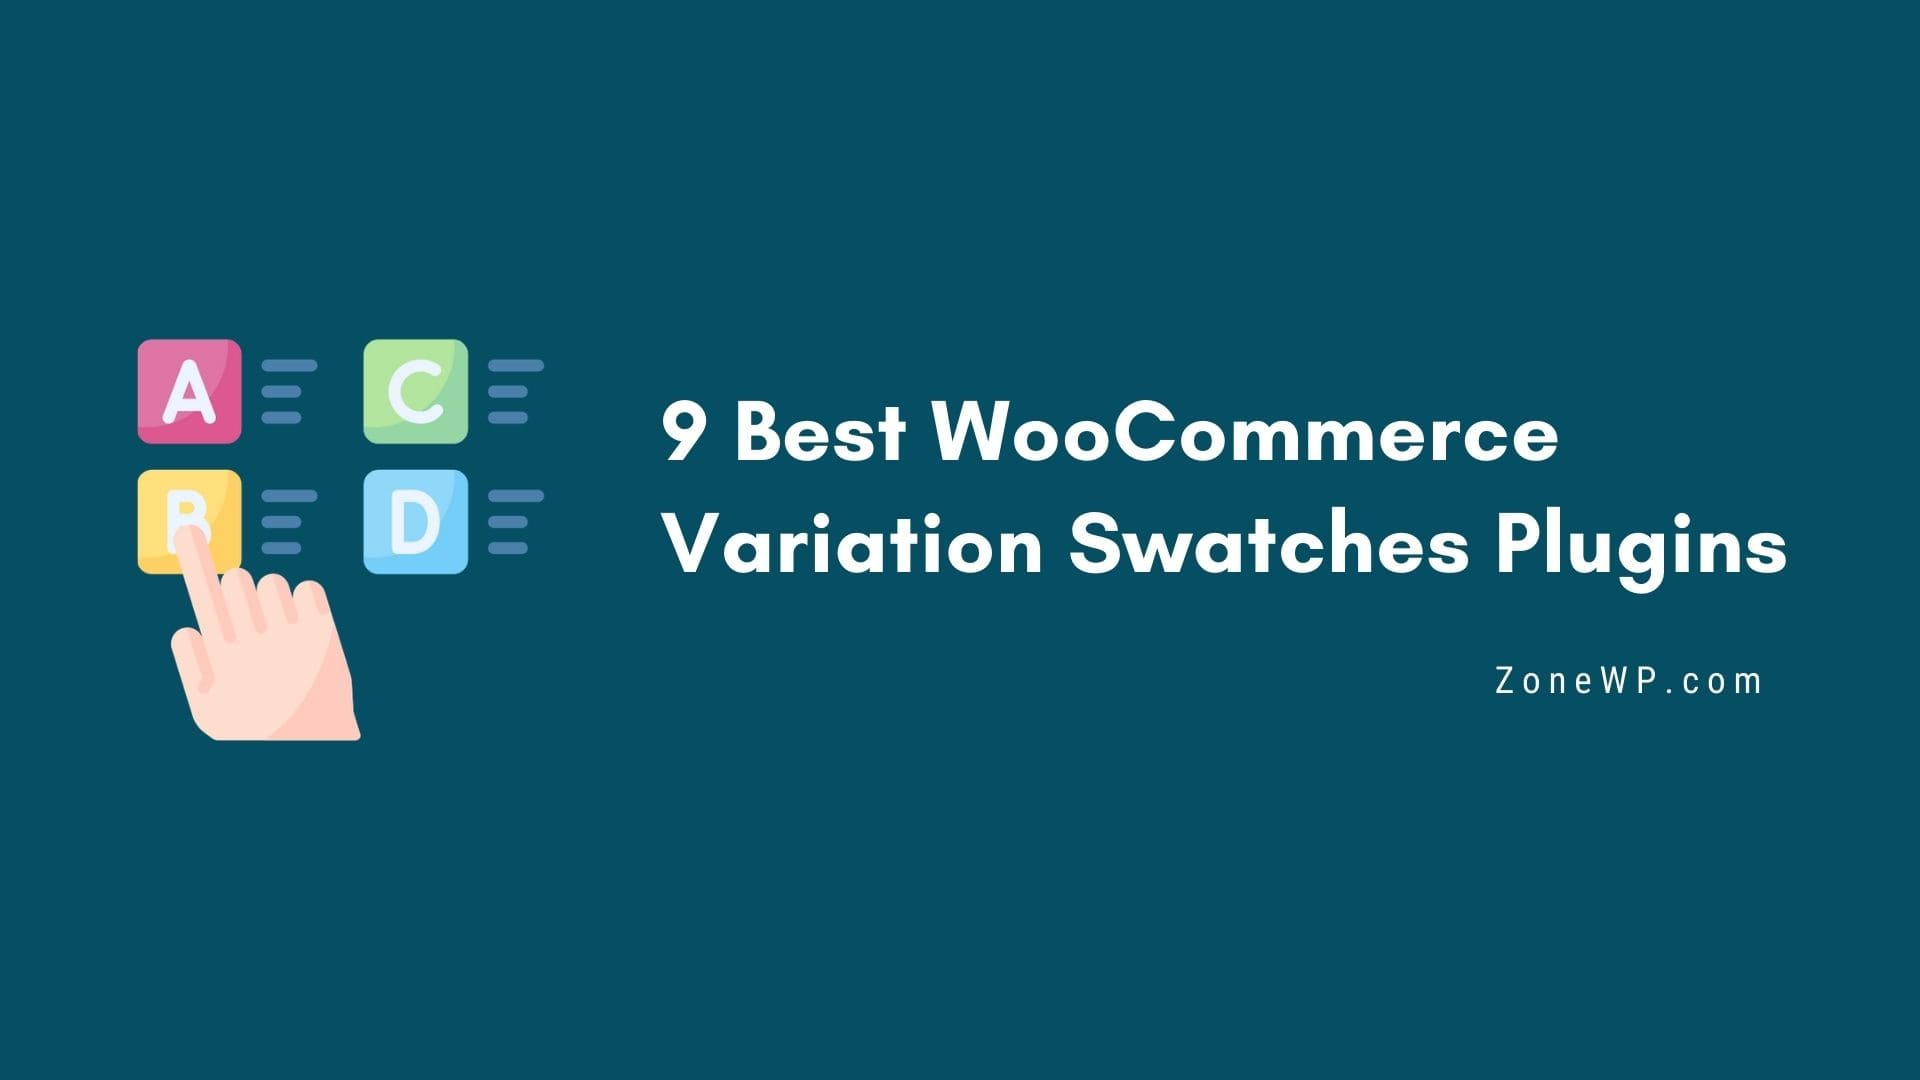 9 Best WooCommerce Variation Swatches Plugins